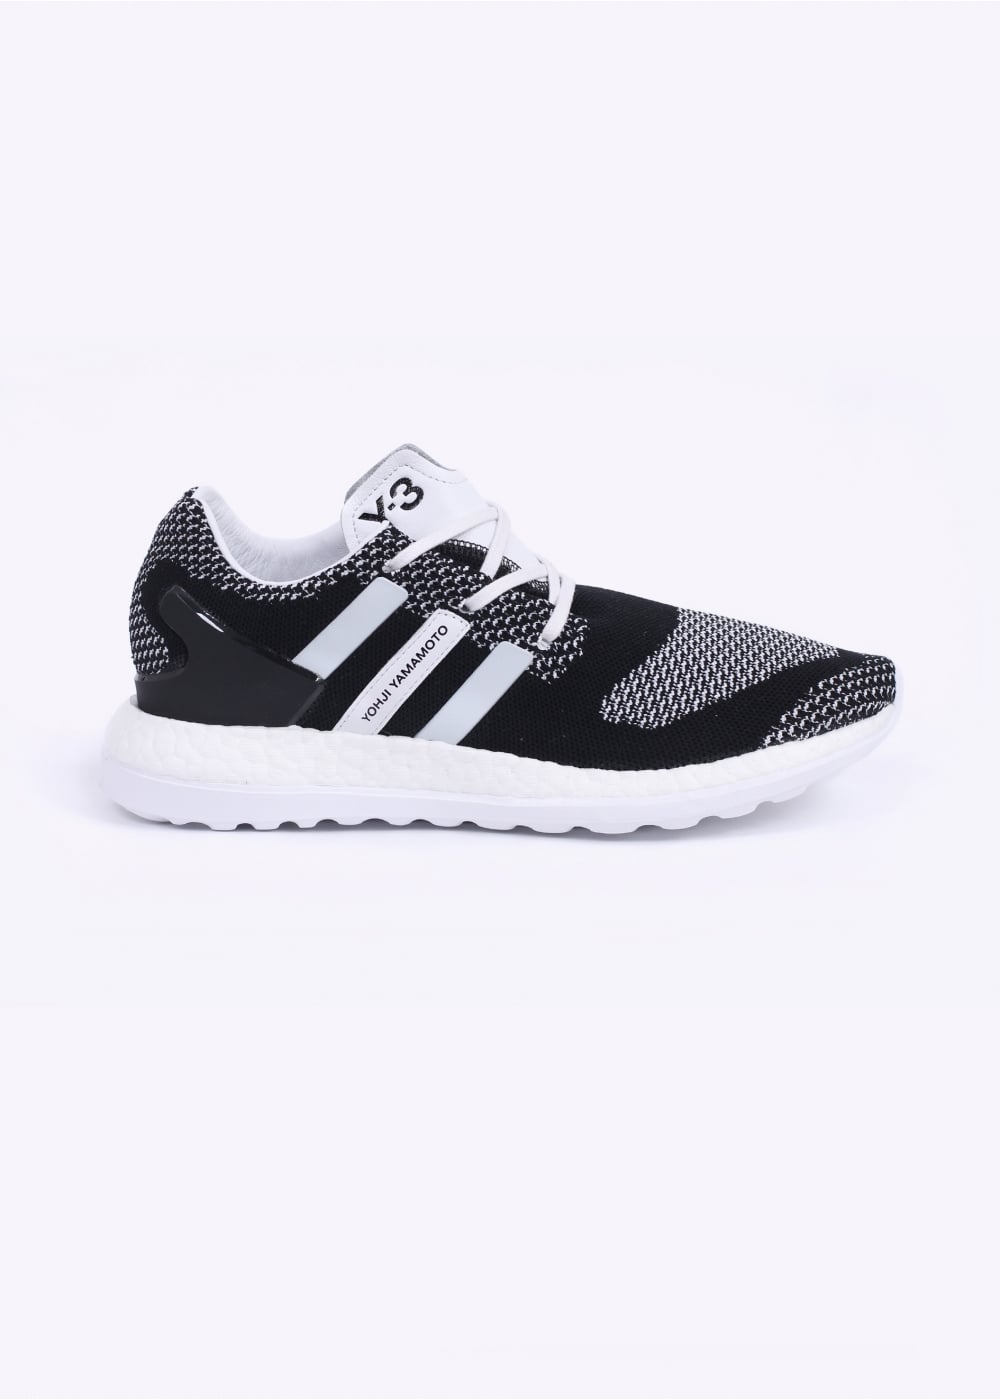 353bfb194040c adidas Y-3 Pure Boost ZG Knit Trainers - Black   White